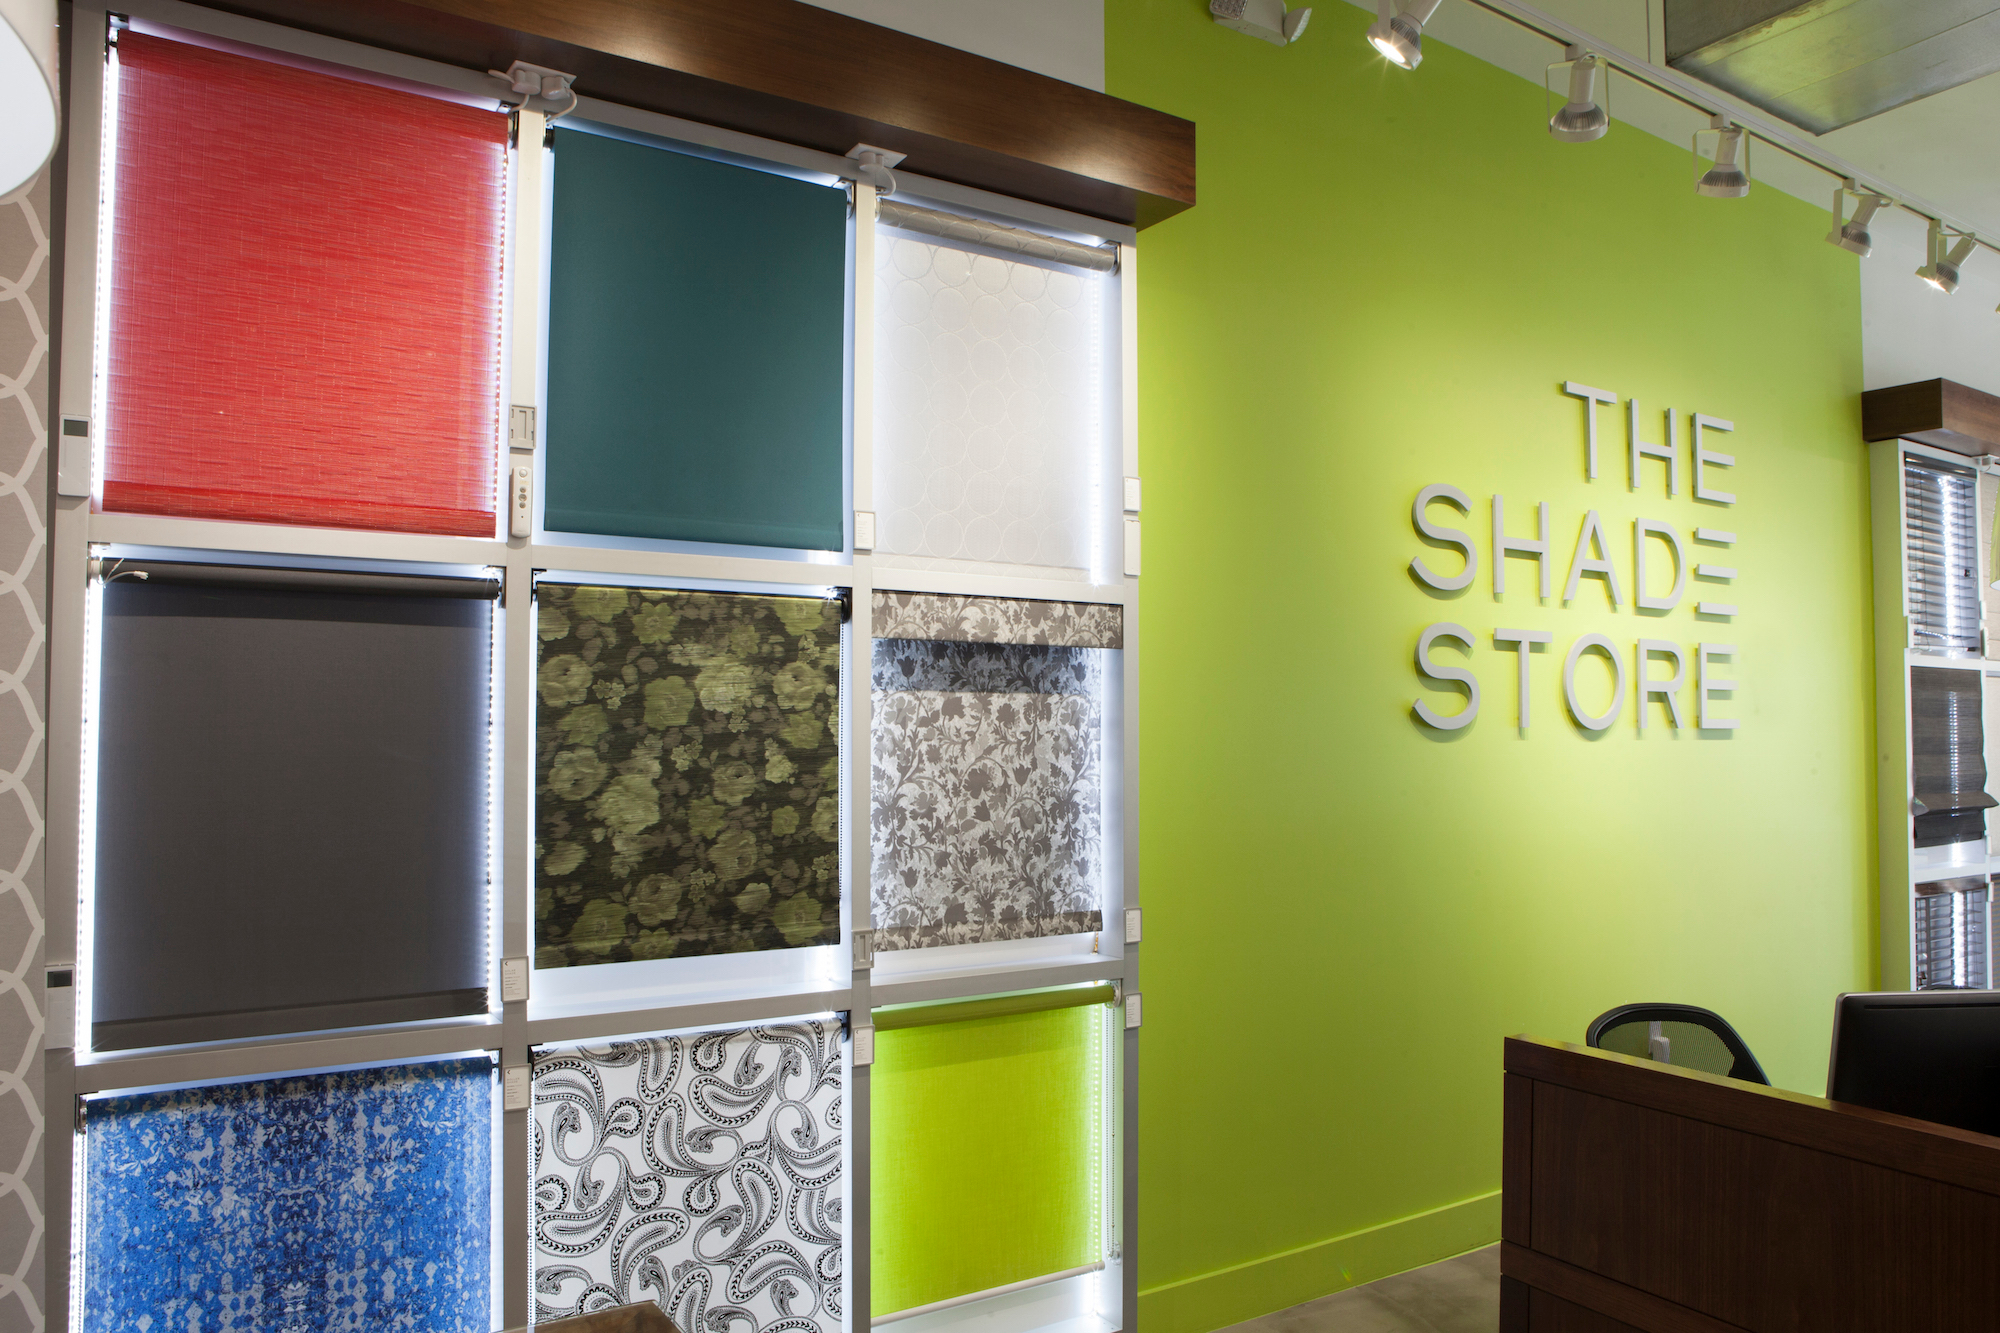 The Shade Store image 9